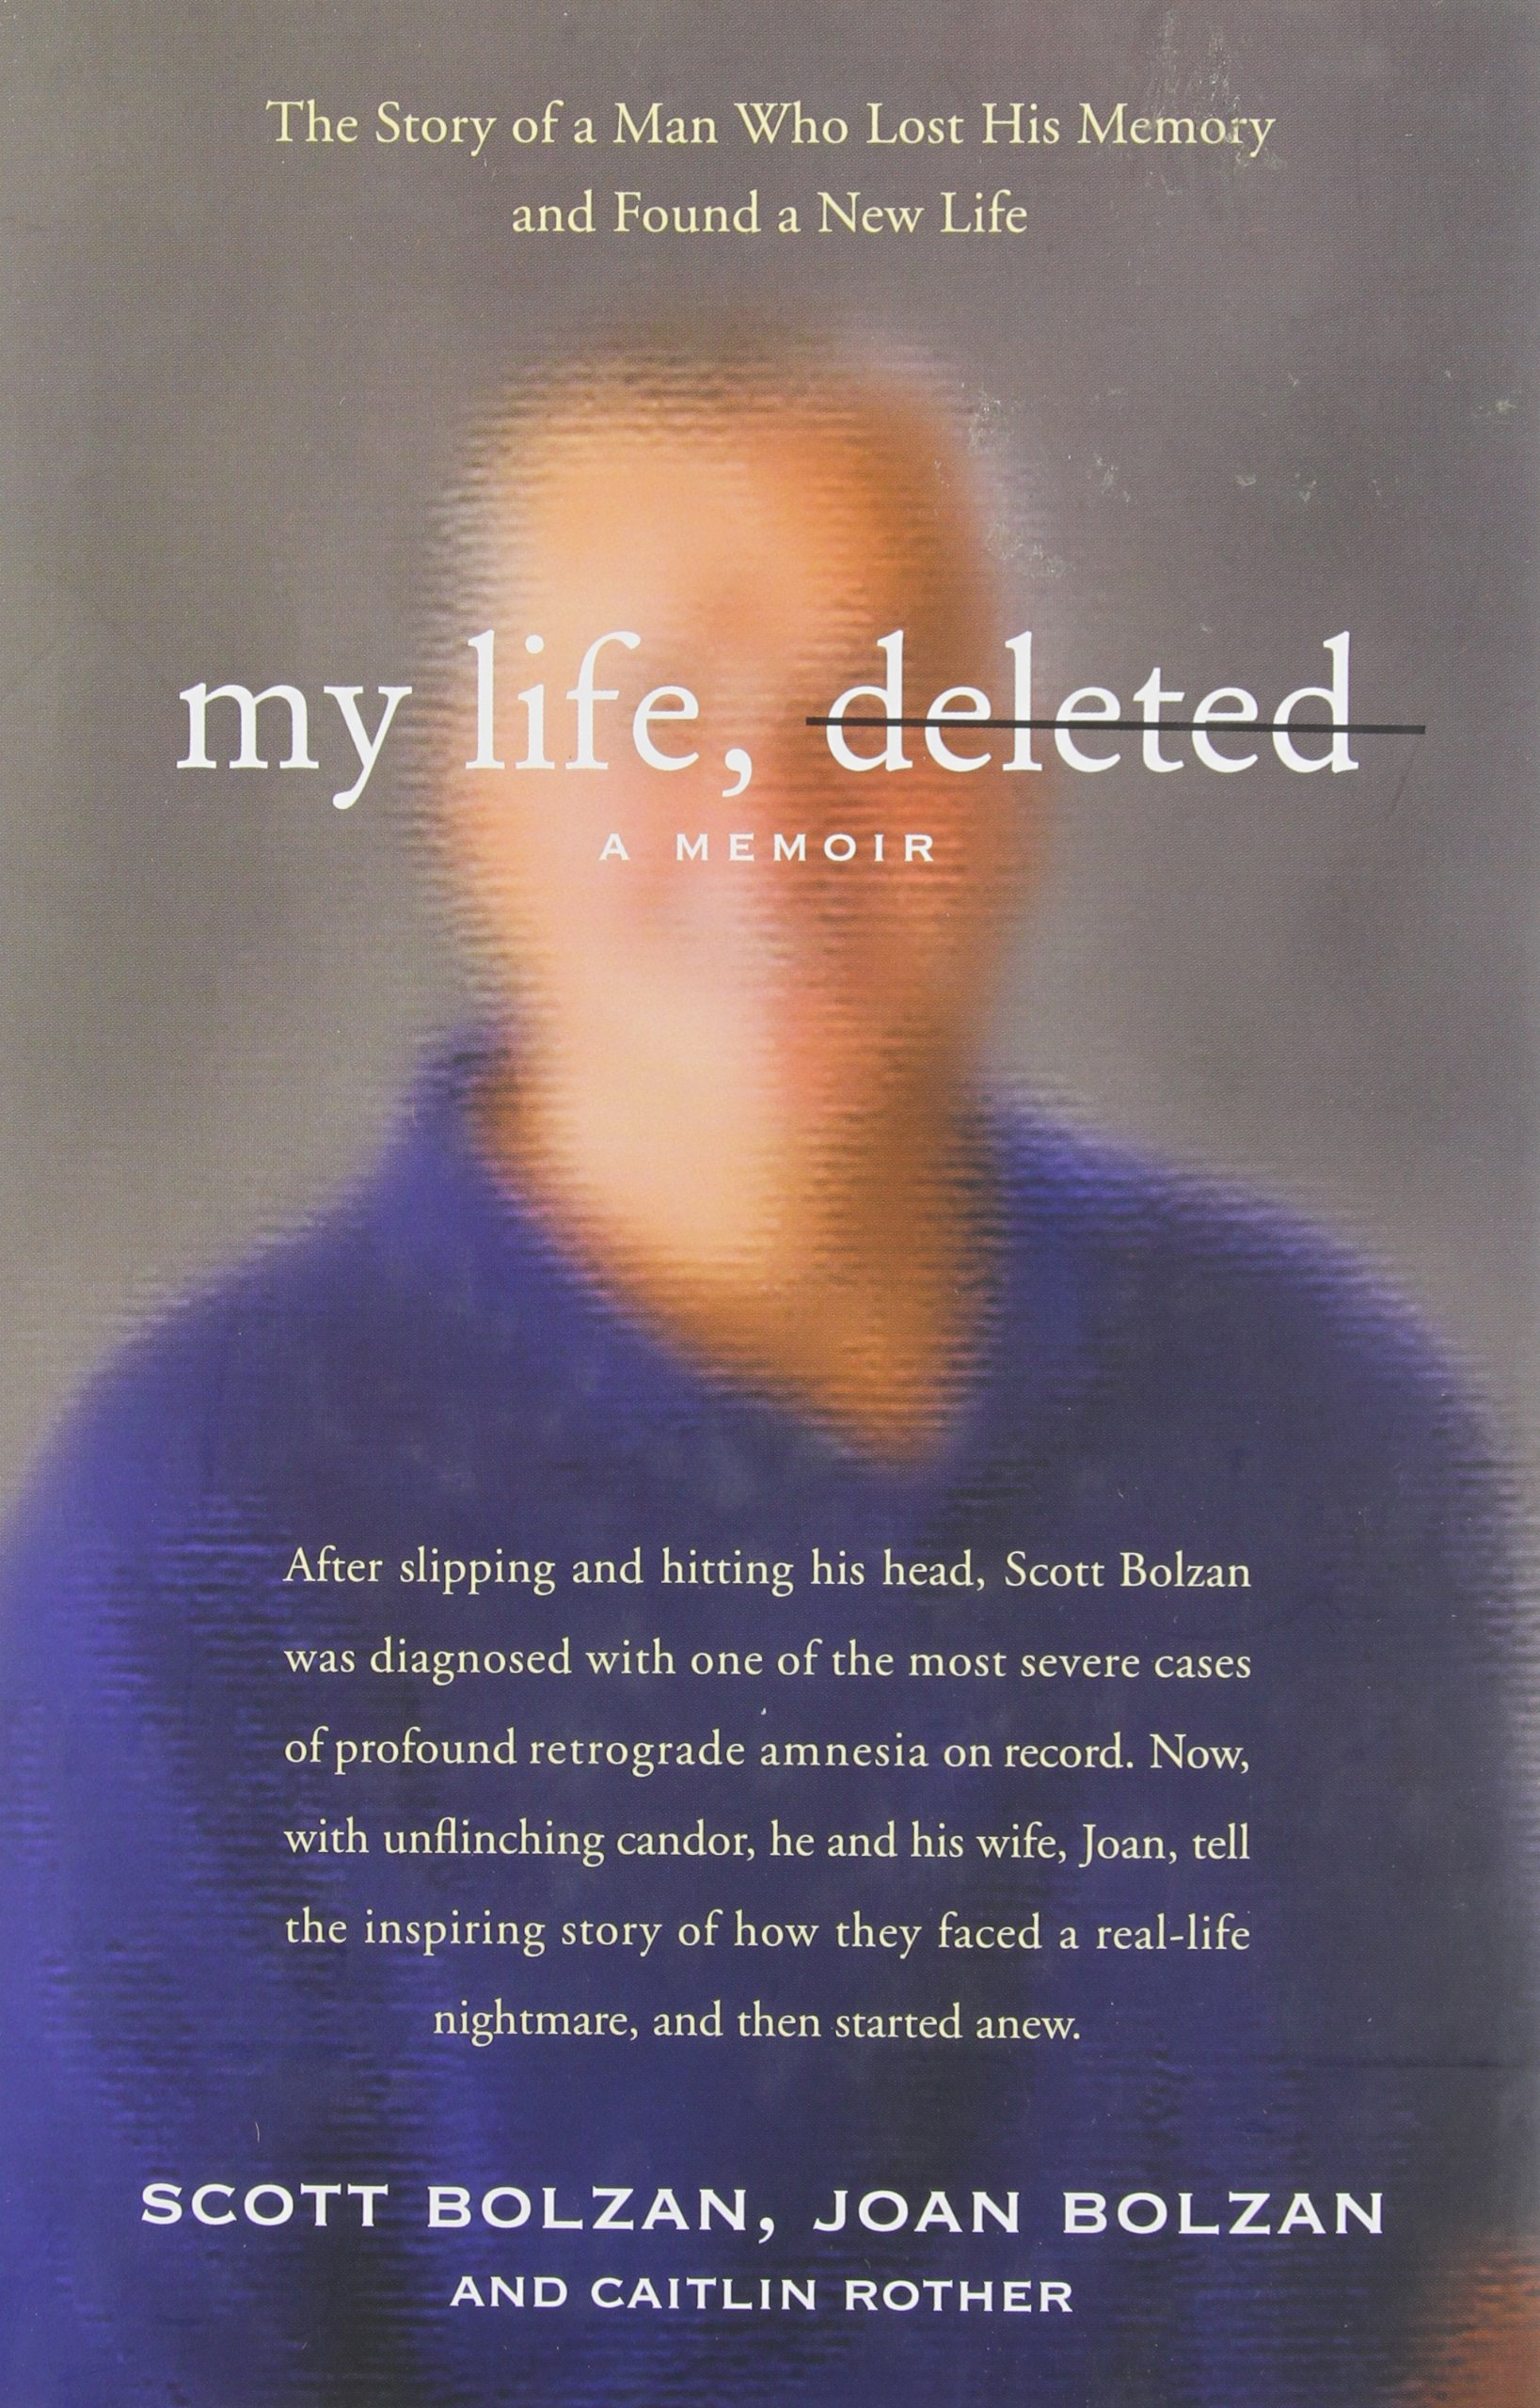 My Life, Deleted: A Memoir: Scott Bolzan, Joan Bolzan, Caitlin Rother:  Amazon.com: Books